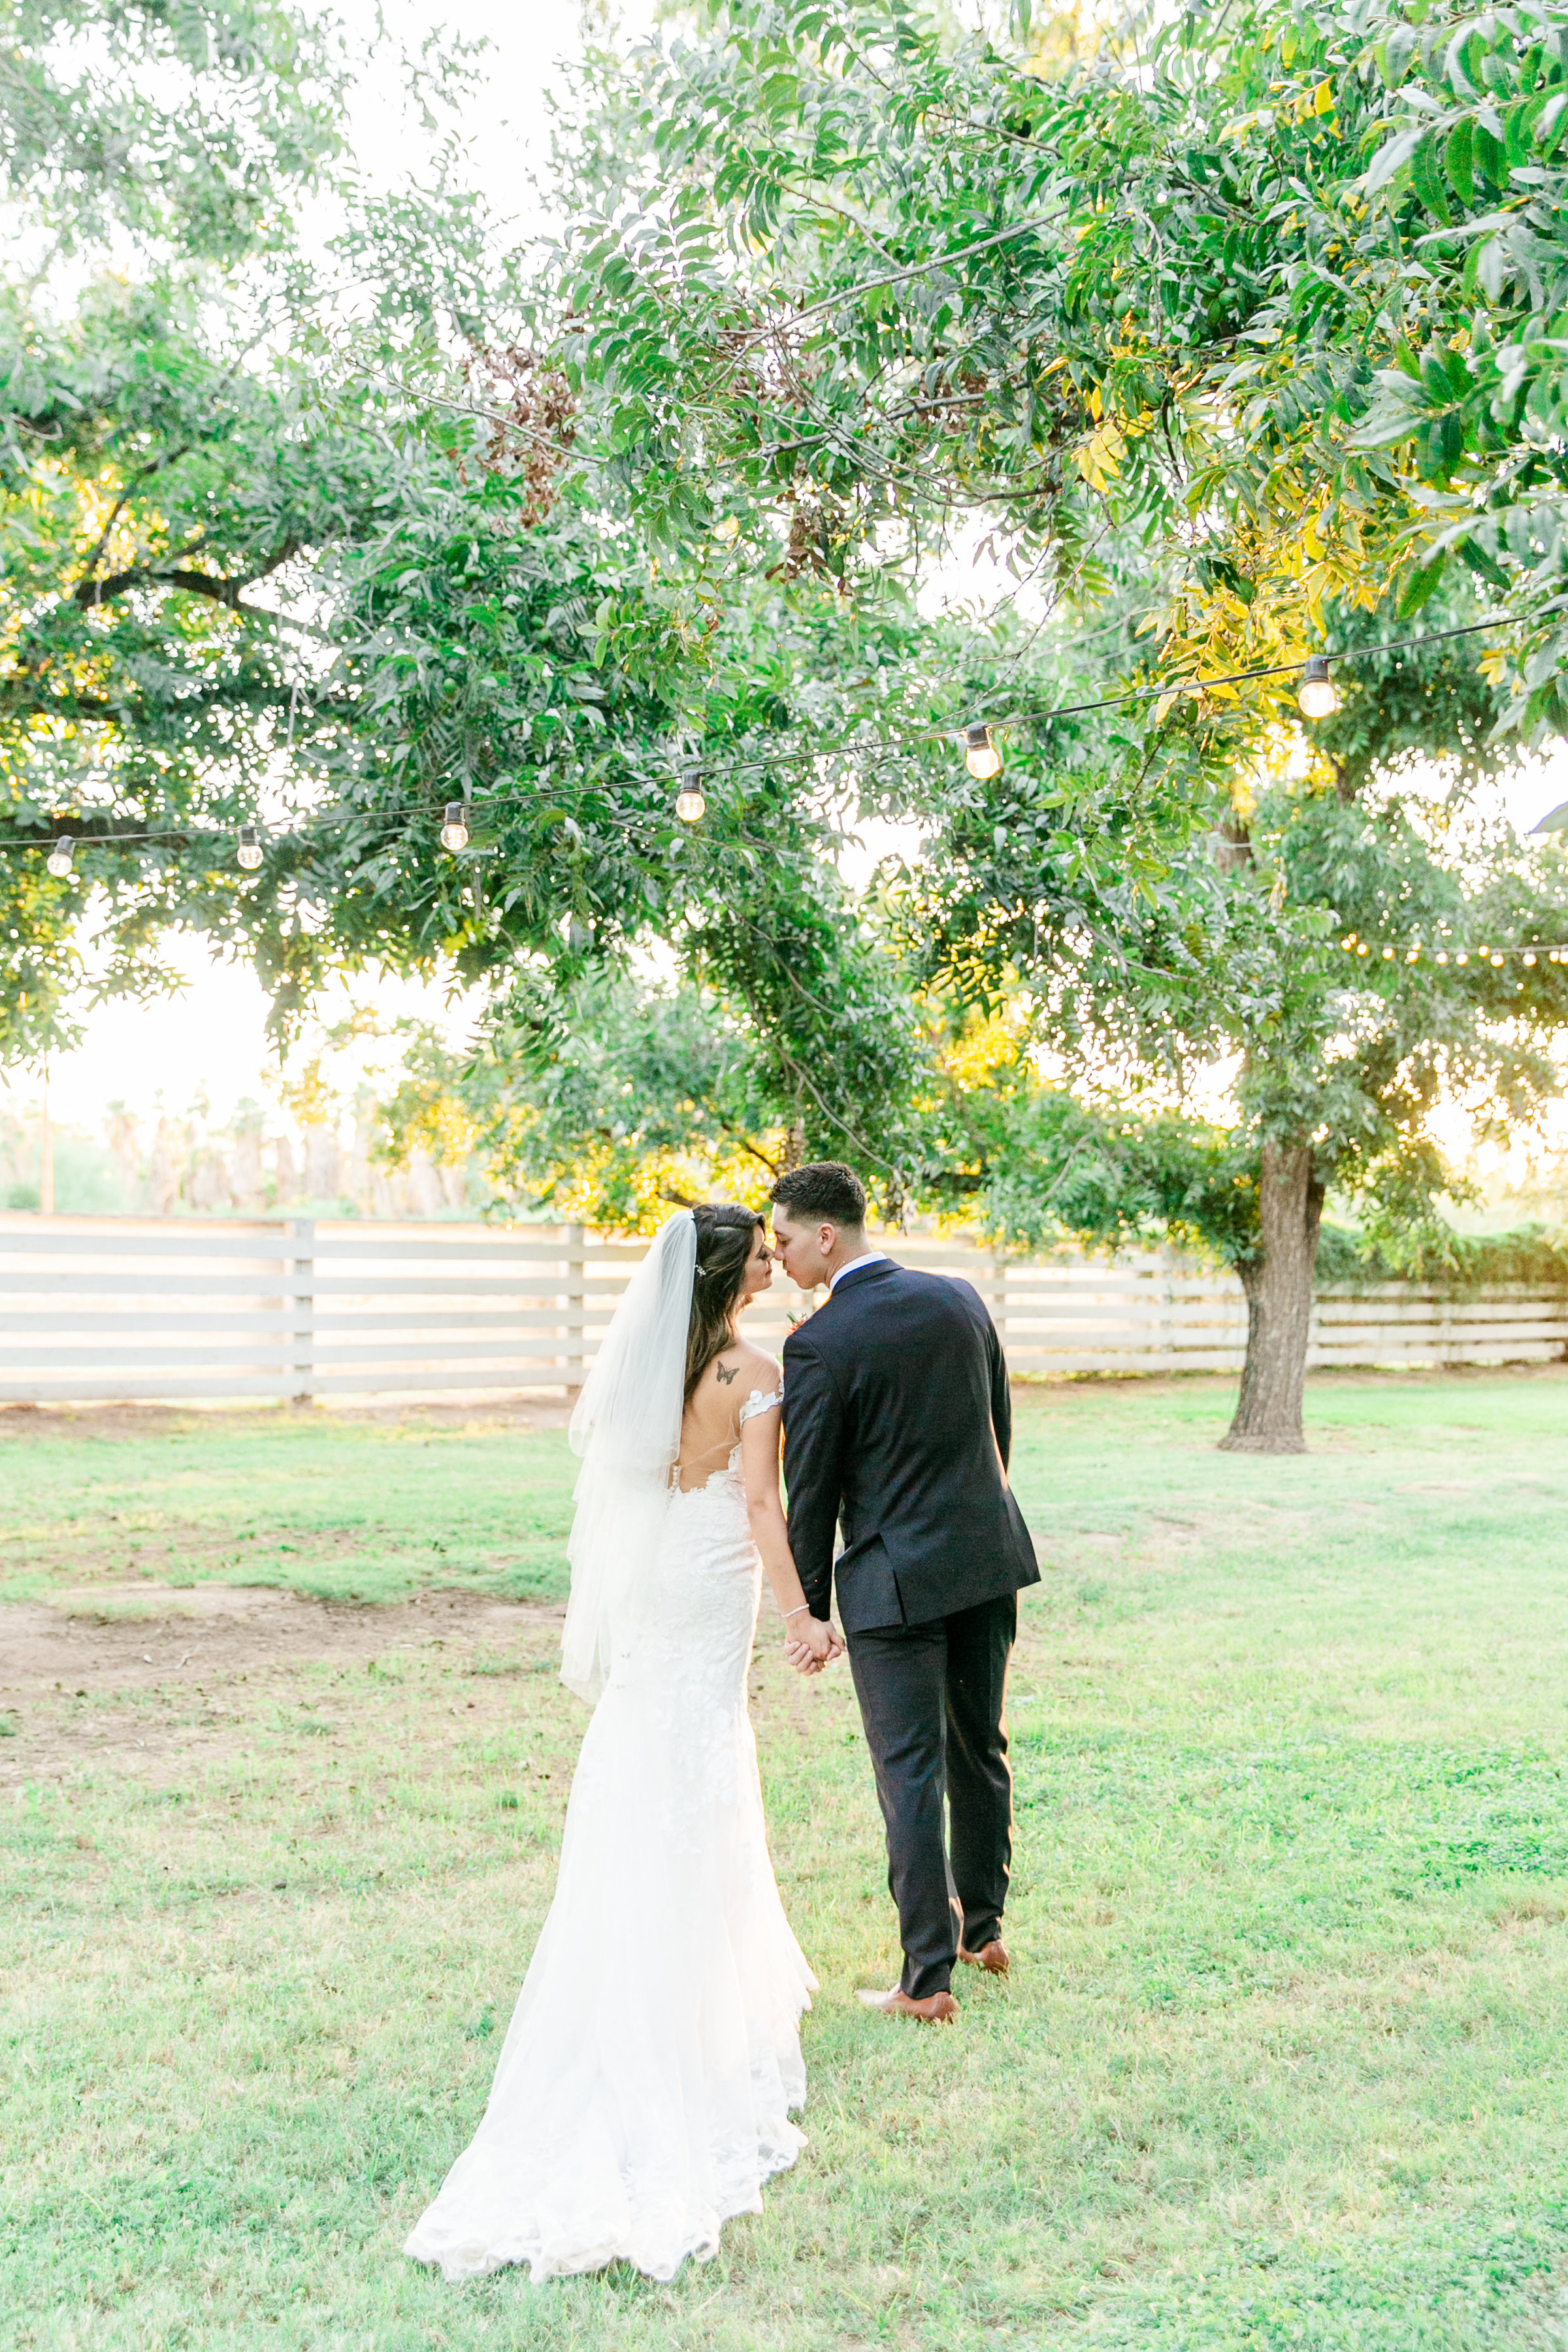 Karlie Colleen Photography - Phoenix Arizona - Farm At South Mountain Venue - Vanessa & Robert-599